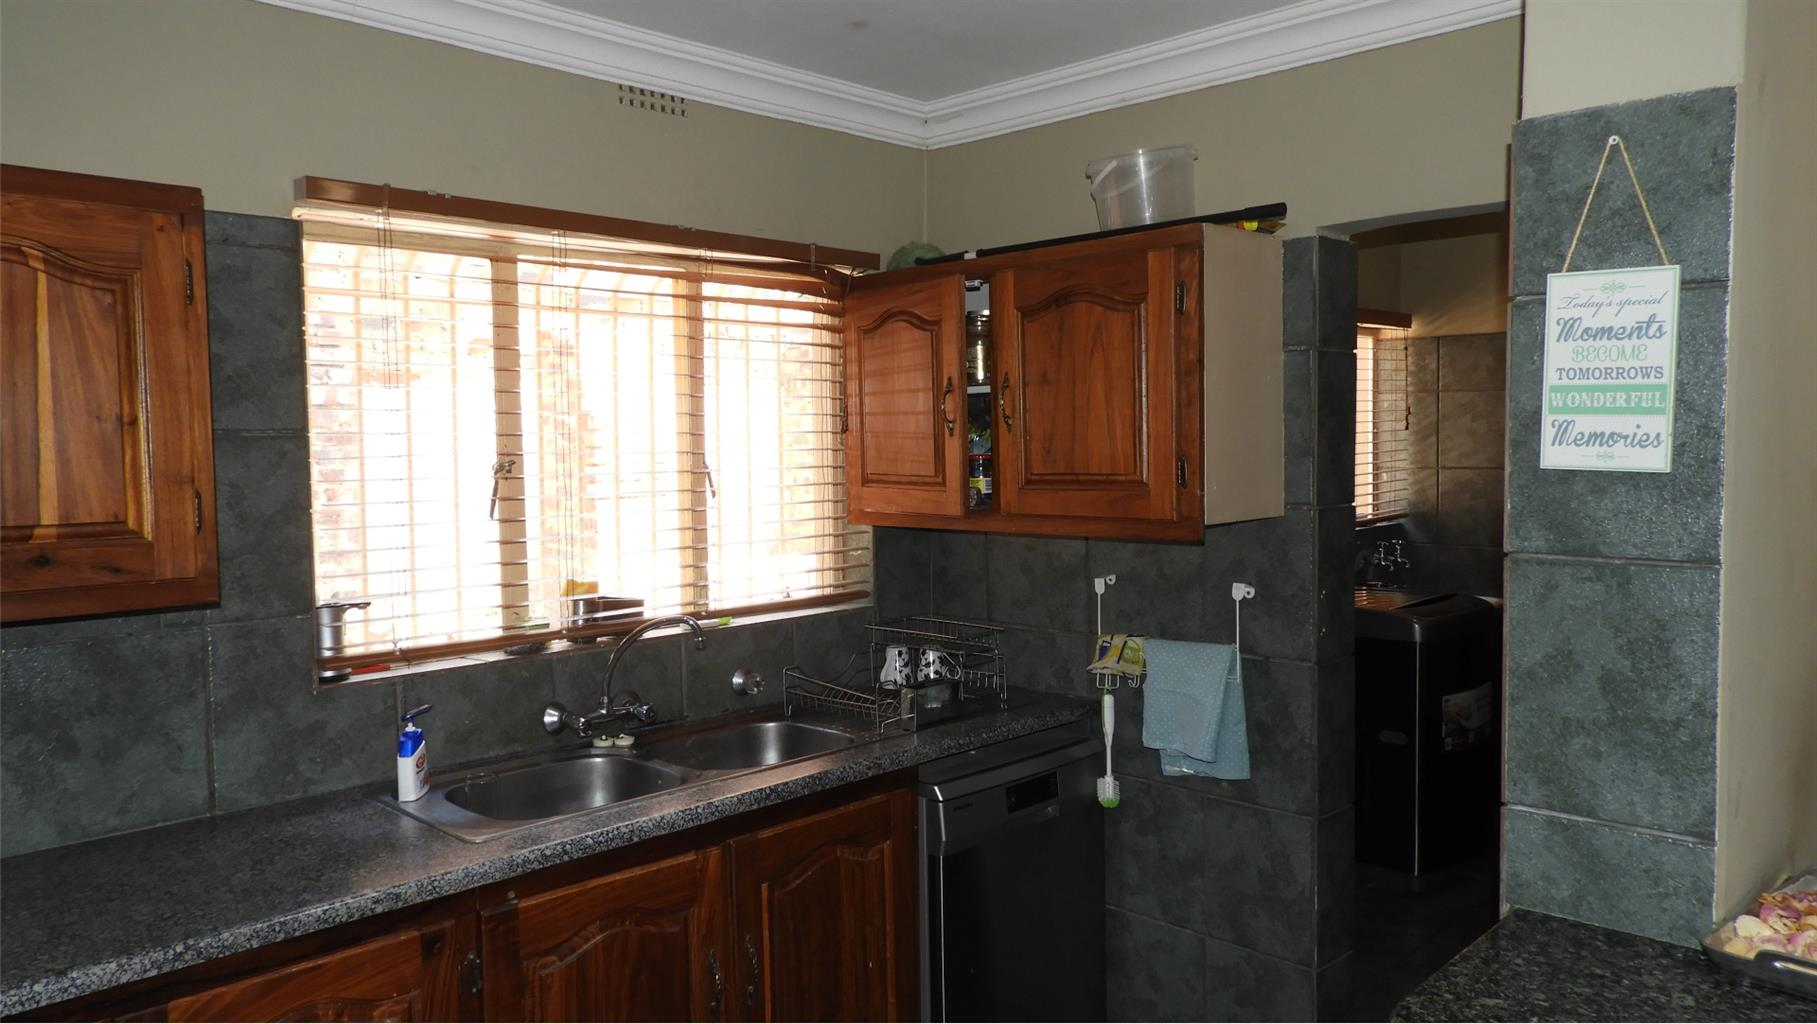 Stunning house in Meyerspark to be sold on auction is ON SHOW 24 November 2:00pm- 4:00pm!